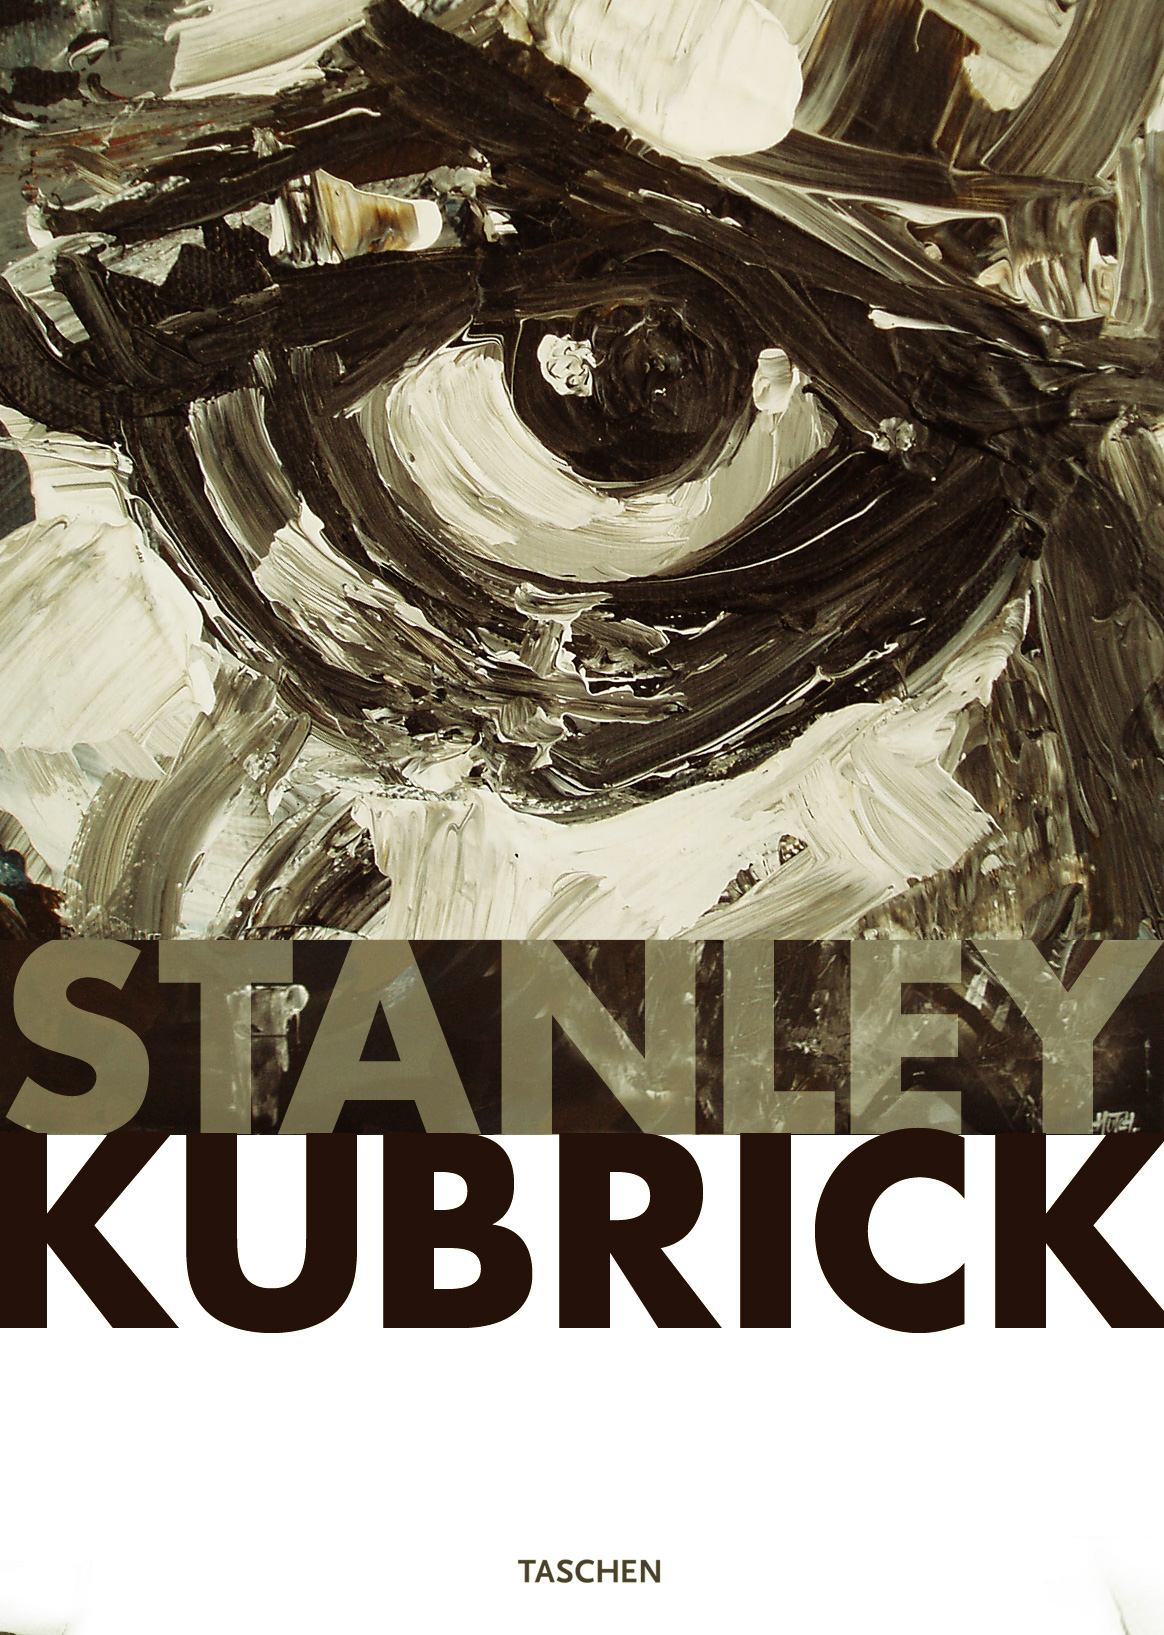 Big fan of Stanley Kubrick.  This is a book cover design using a close up of one of my paintings